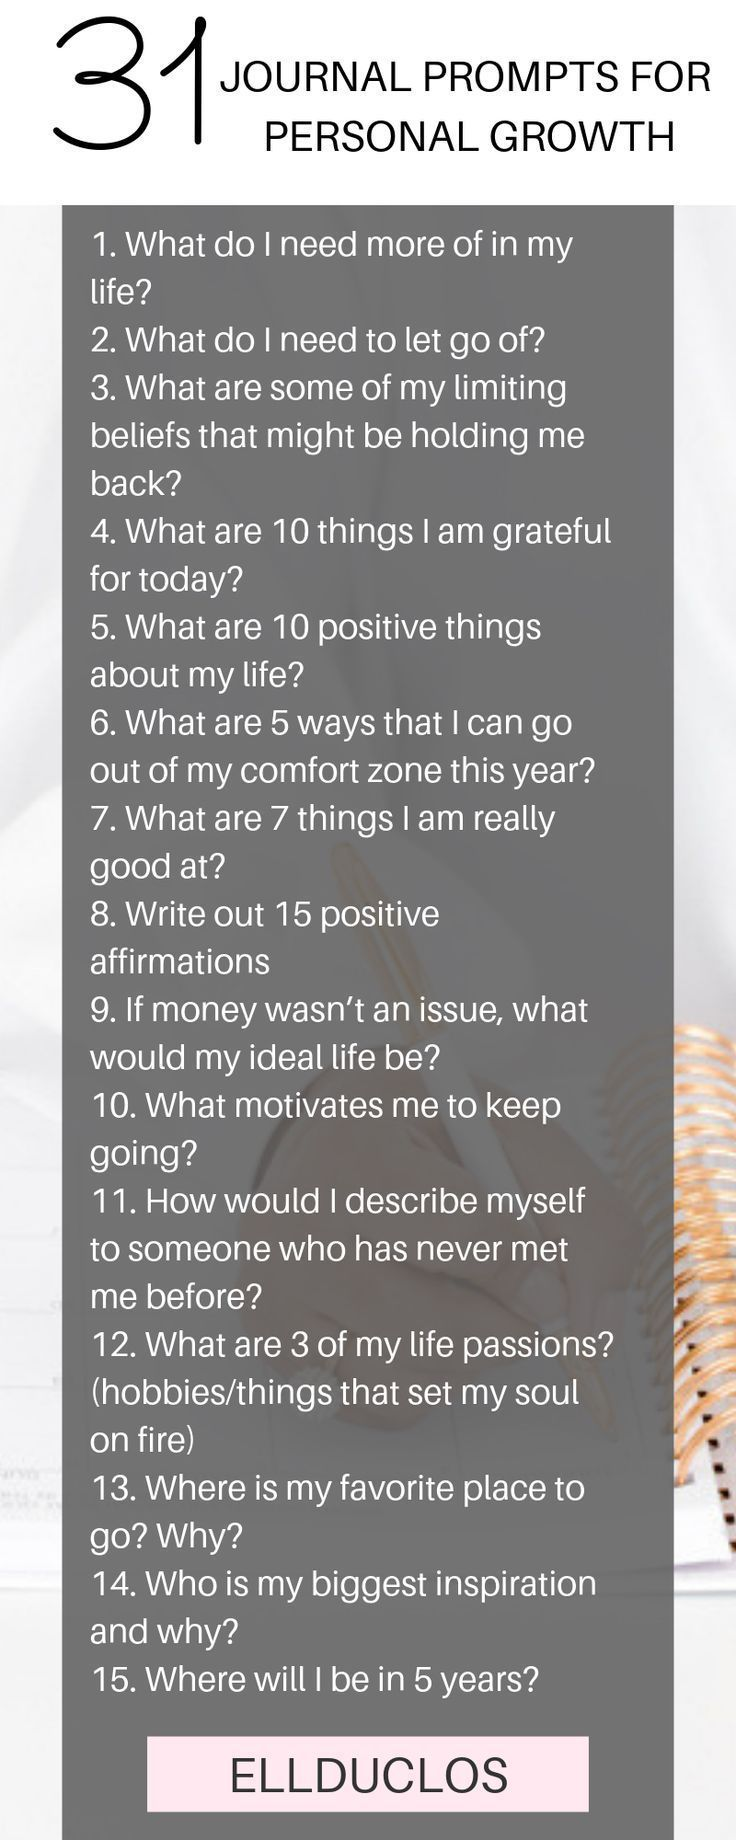 31 journal prompts for personal growth and self discovery. #journal #journalprompts #personaldevelopment #personalgrowth #journalideas #journaling #selfdiscovery #writingprompts #selflove